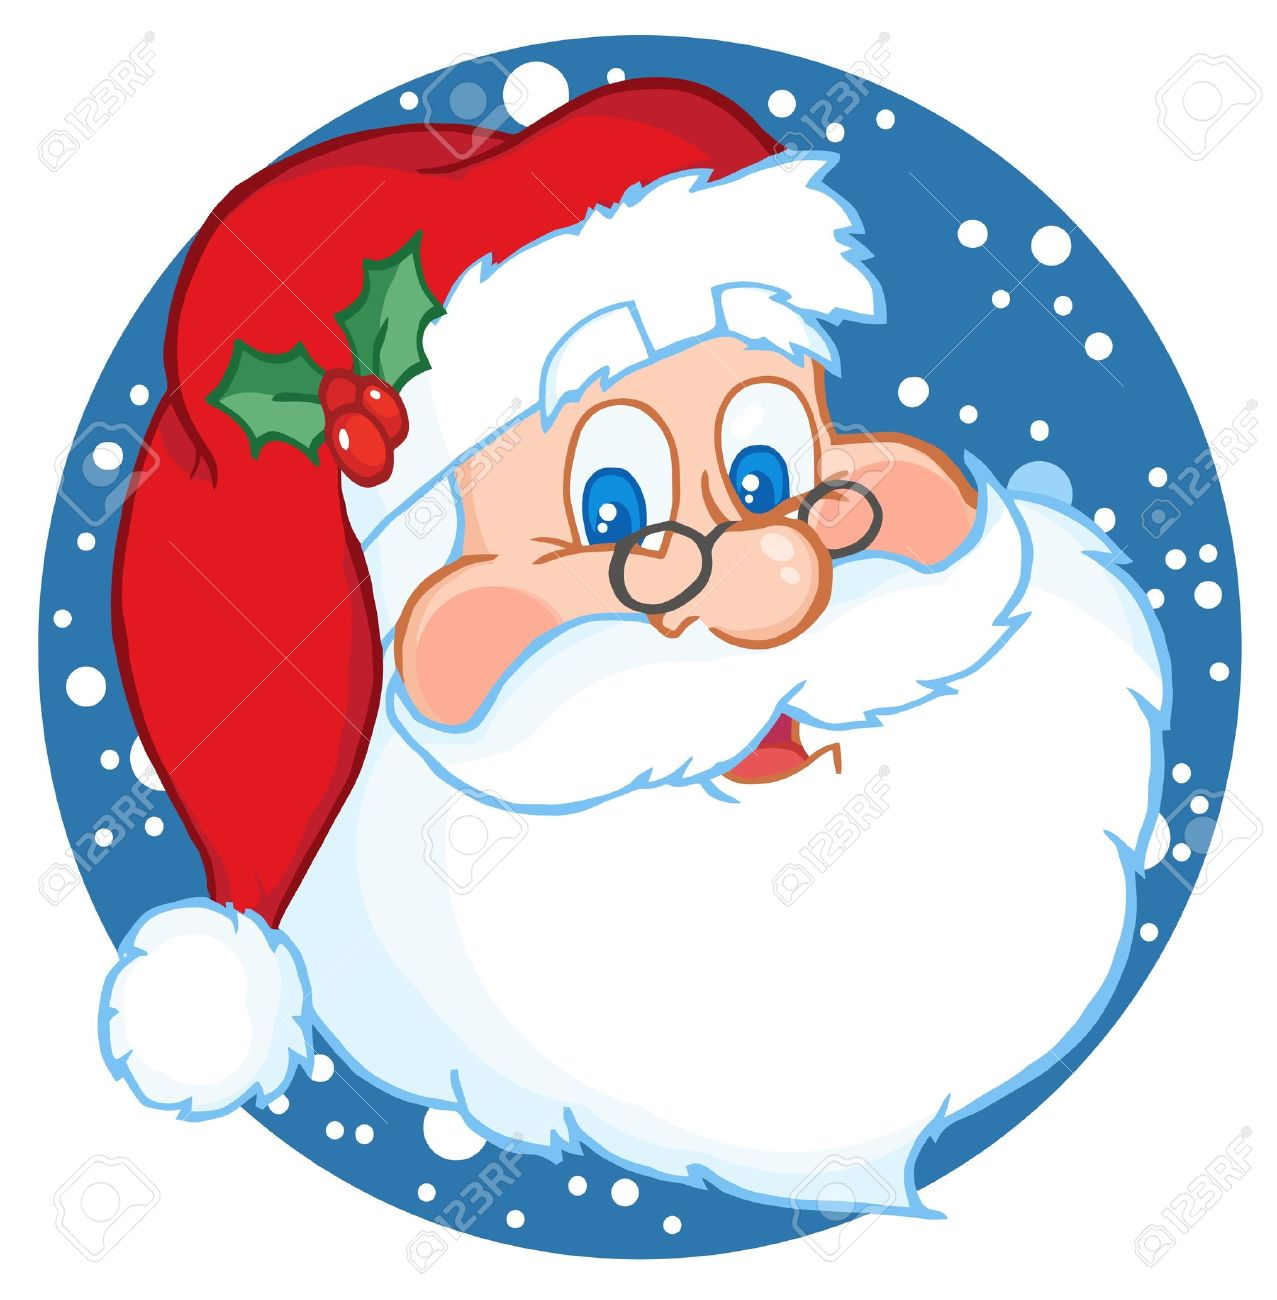 Uncategorized Imagenes Santa Claus santa clause stock photos royalty free images and classic claus face illustration